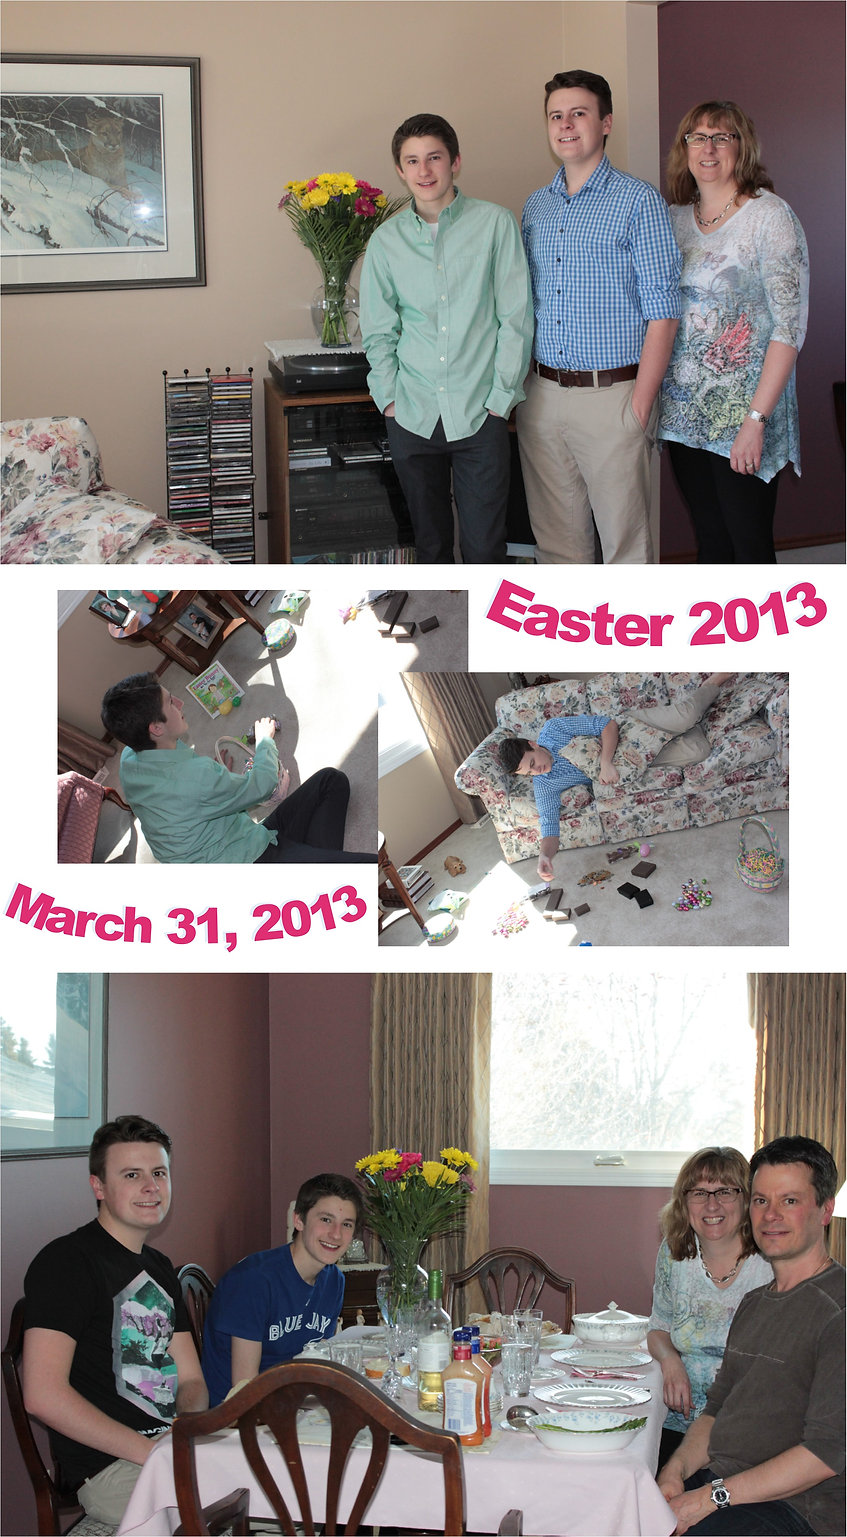 Easter 2013 collage.jpg